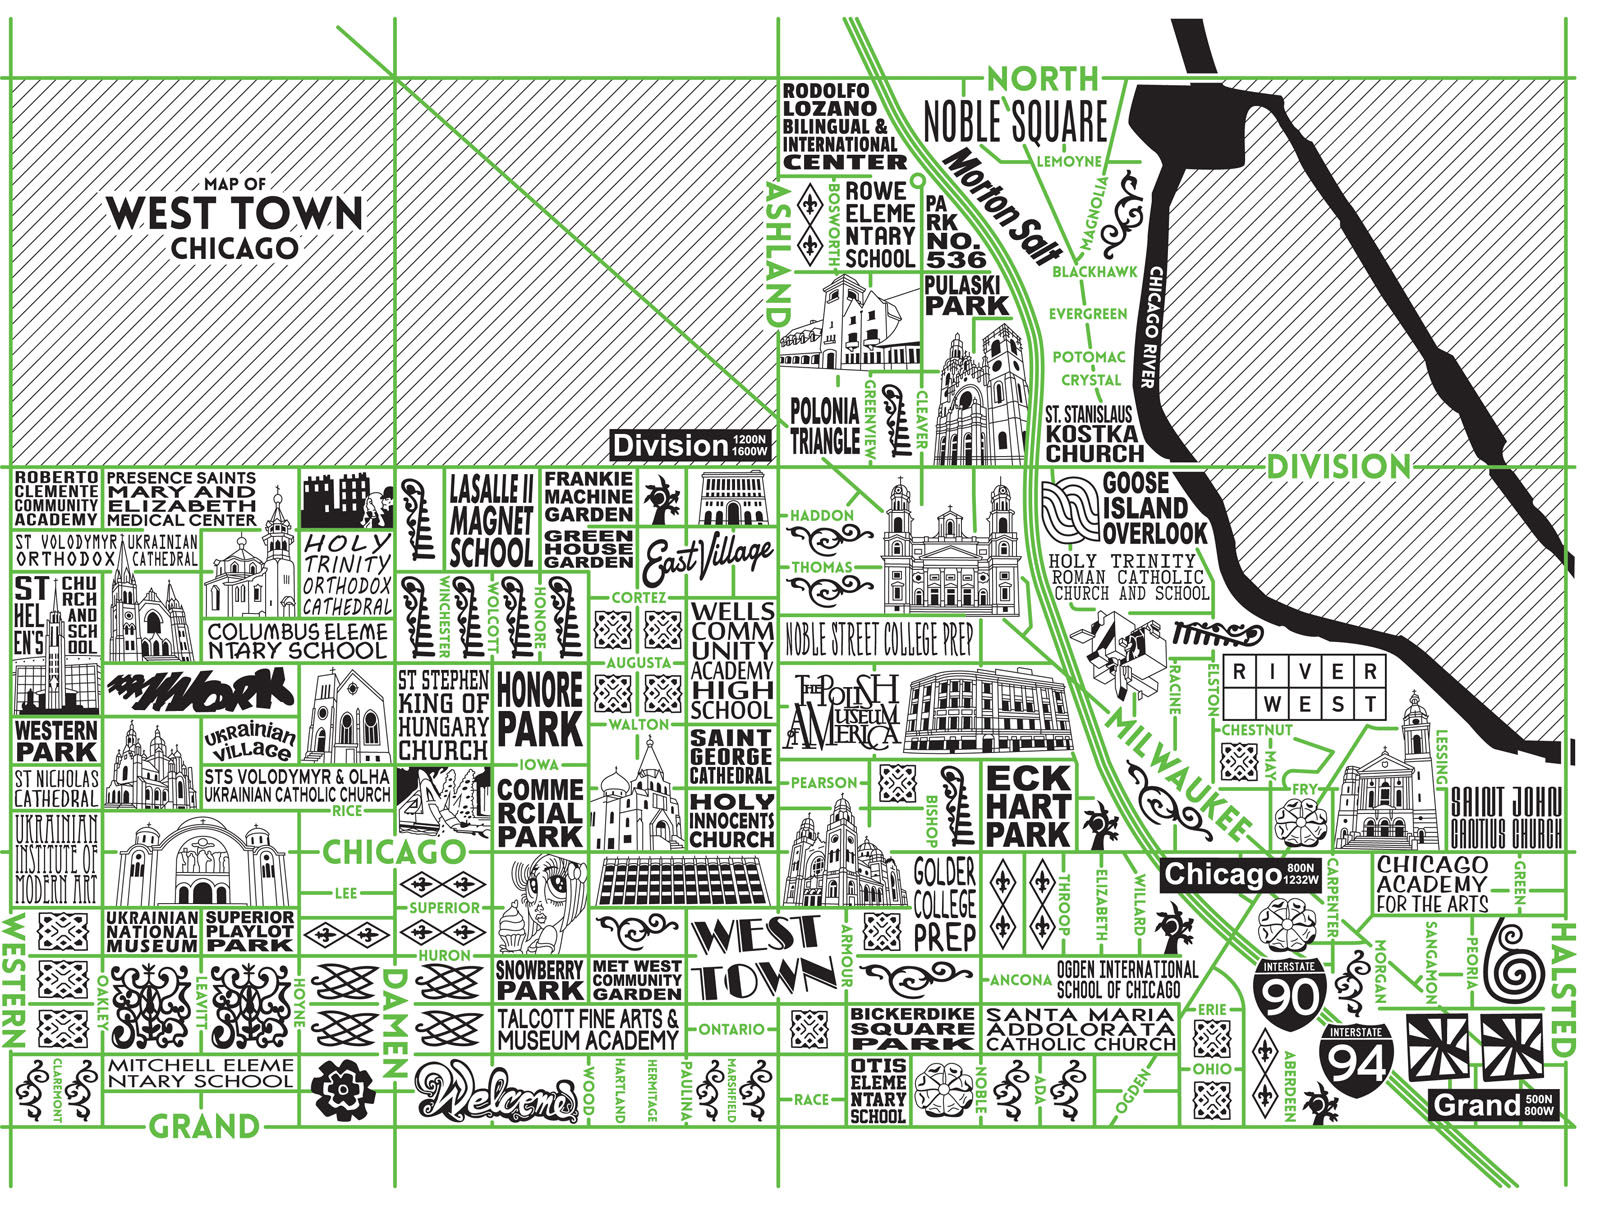 West Town Map -  Purchase a map here